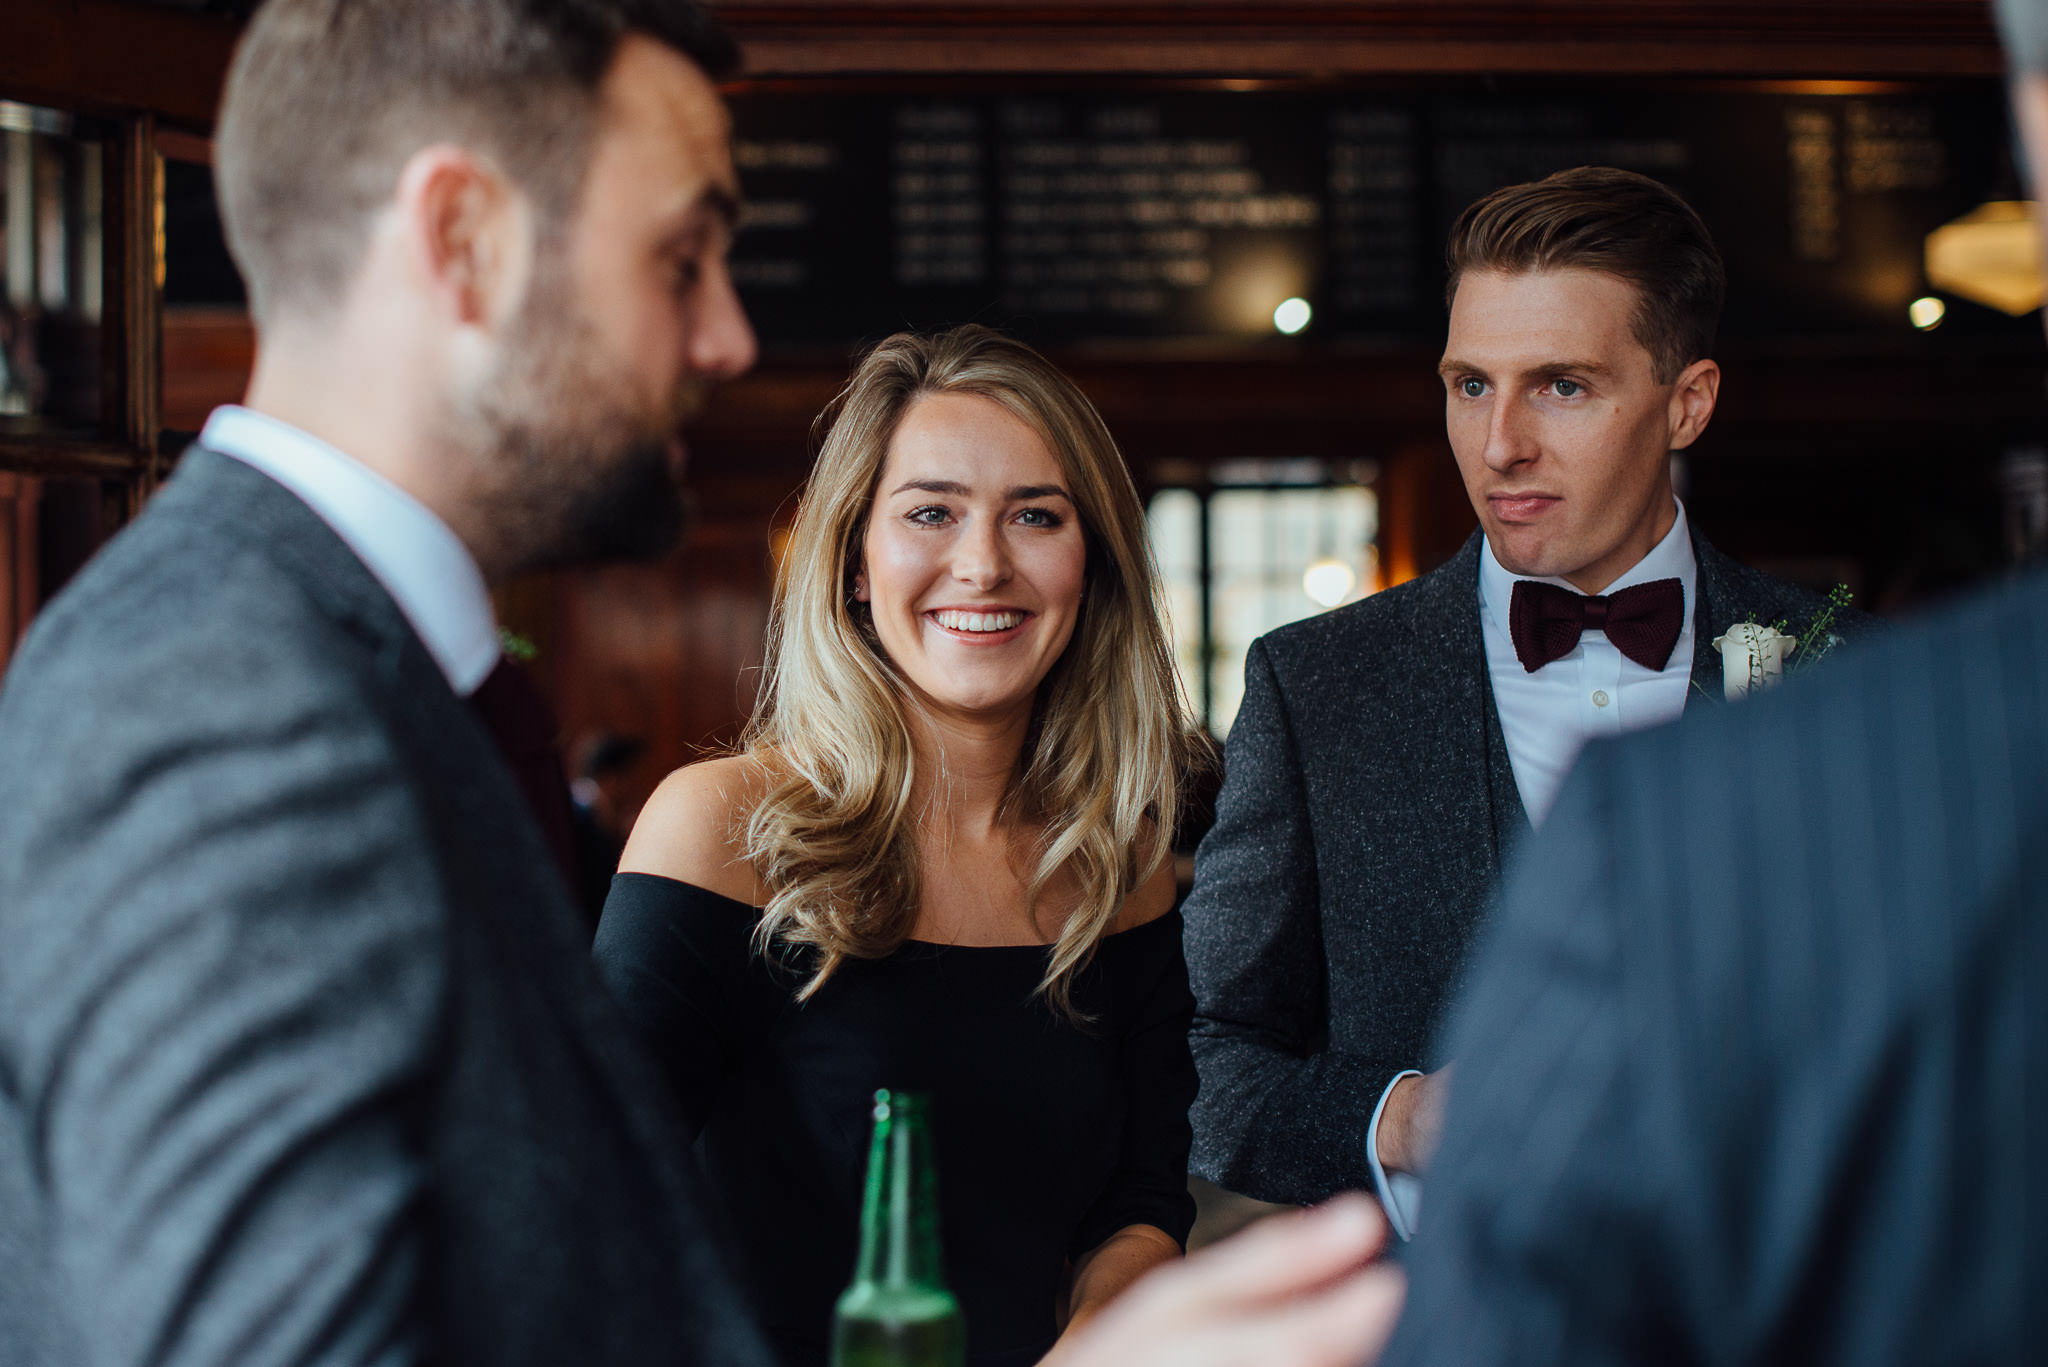 Wedding guests in the rose and crown in stoke newington town hall wedding by creative and alternative london wedding photographer the shannons photography